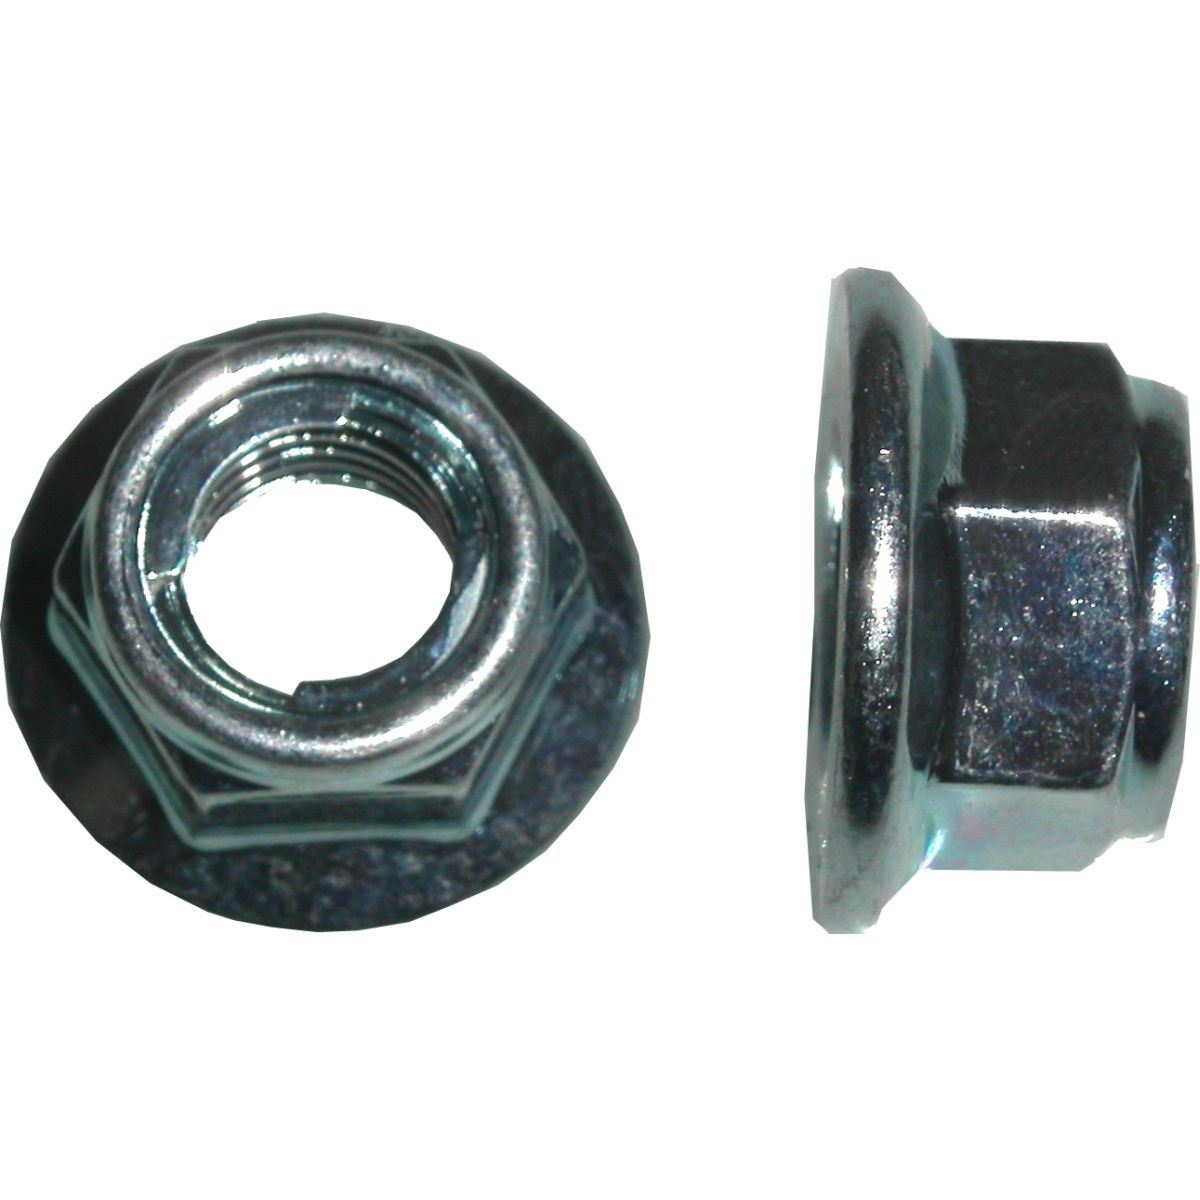 Aw Motorcycle Parts Nuts Flange Metal Locking 10mm Thread